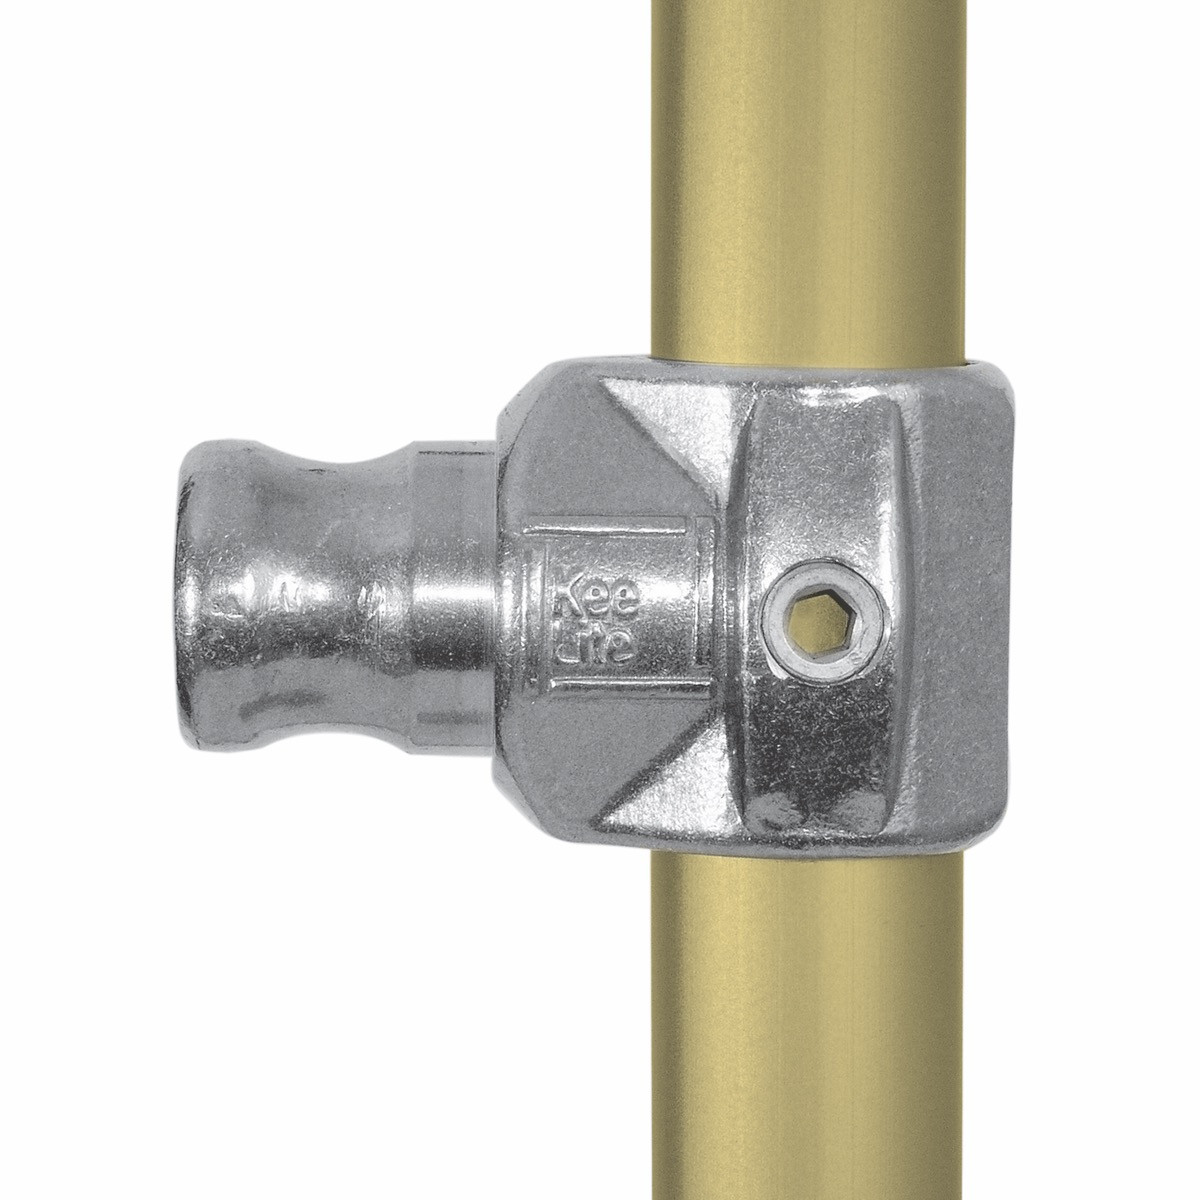 L swivel tee kee lite fitting simplified building